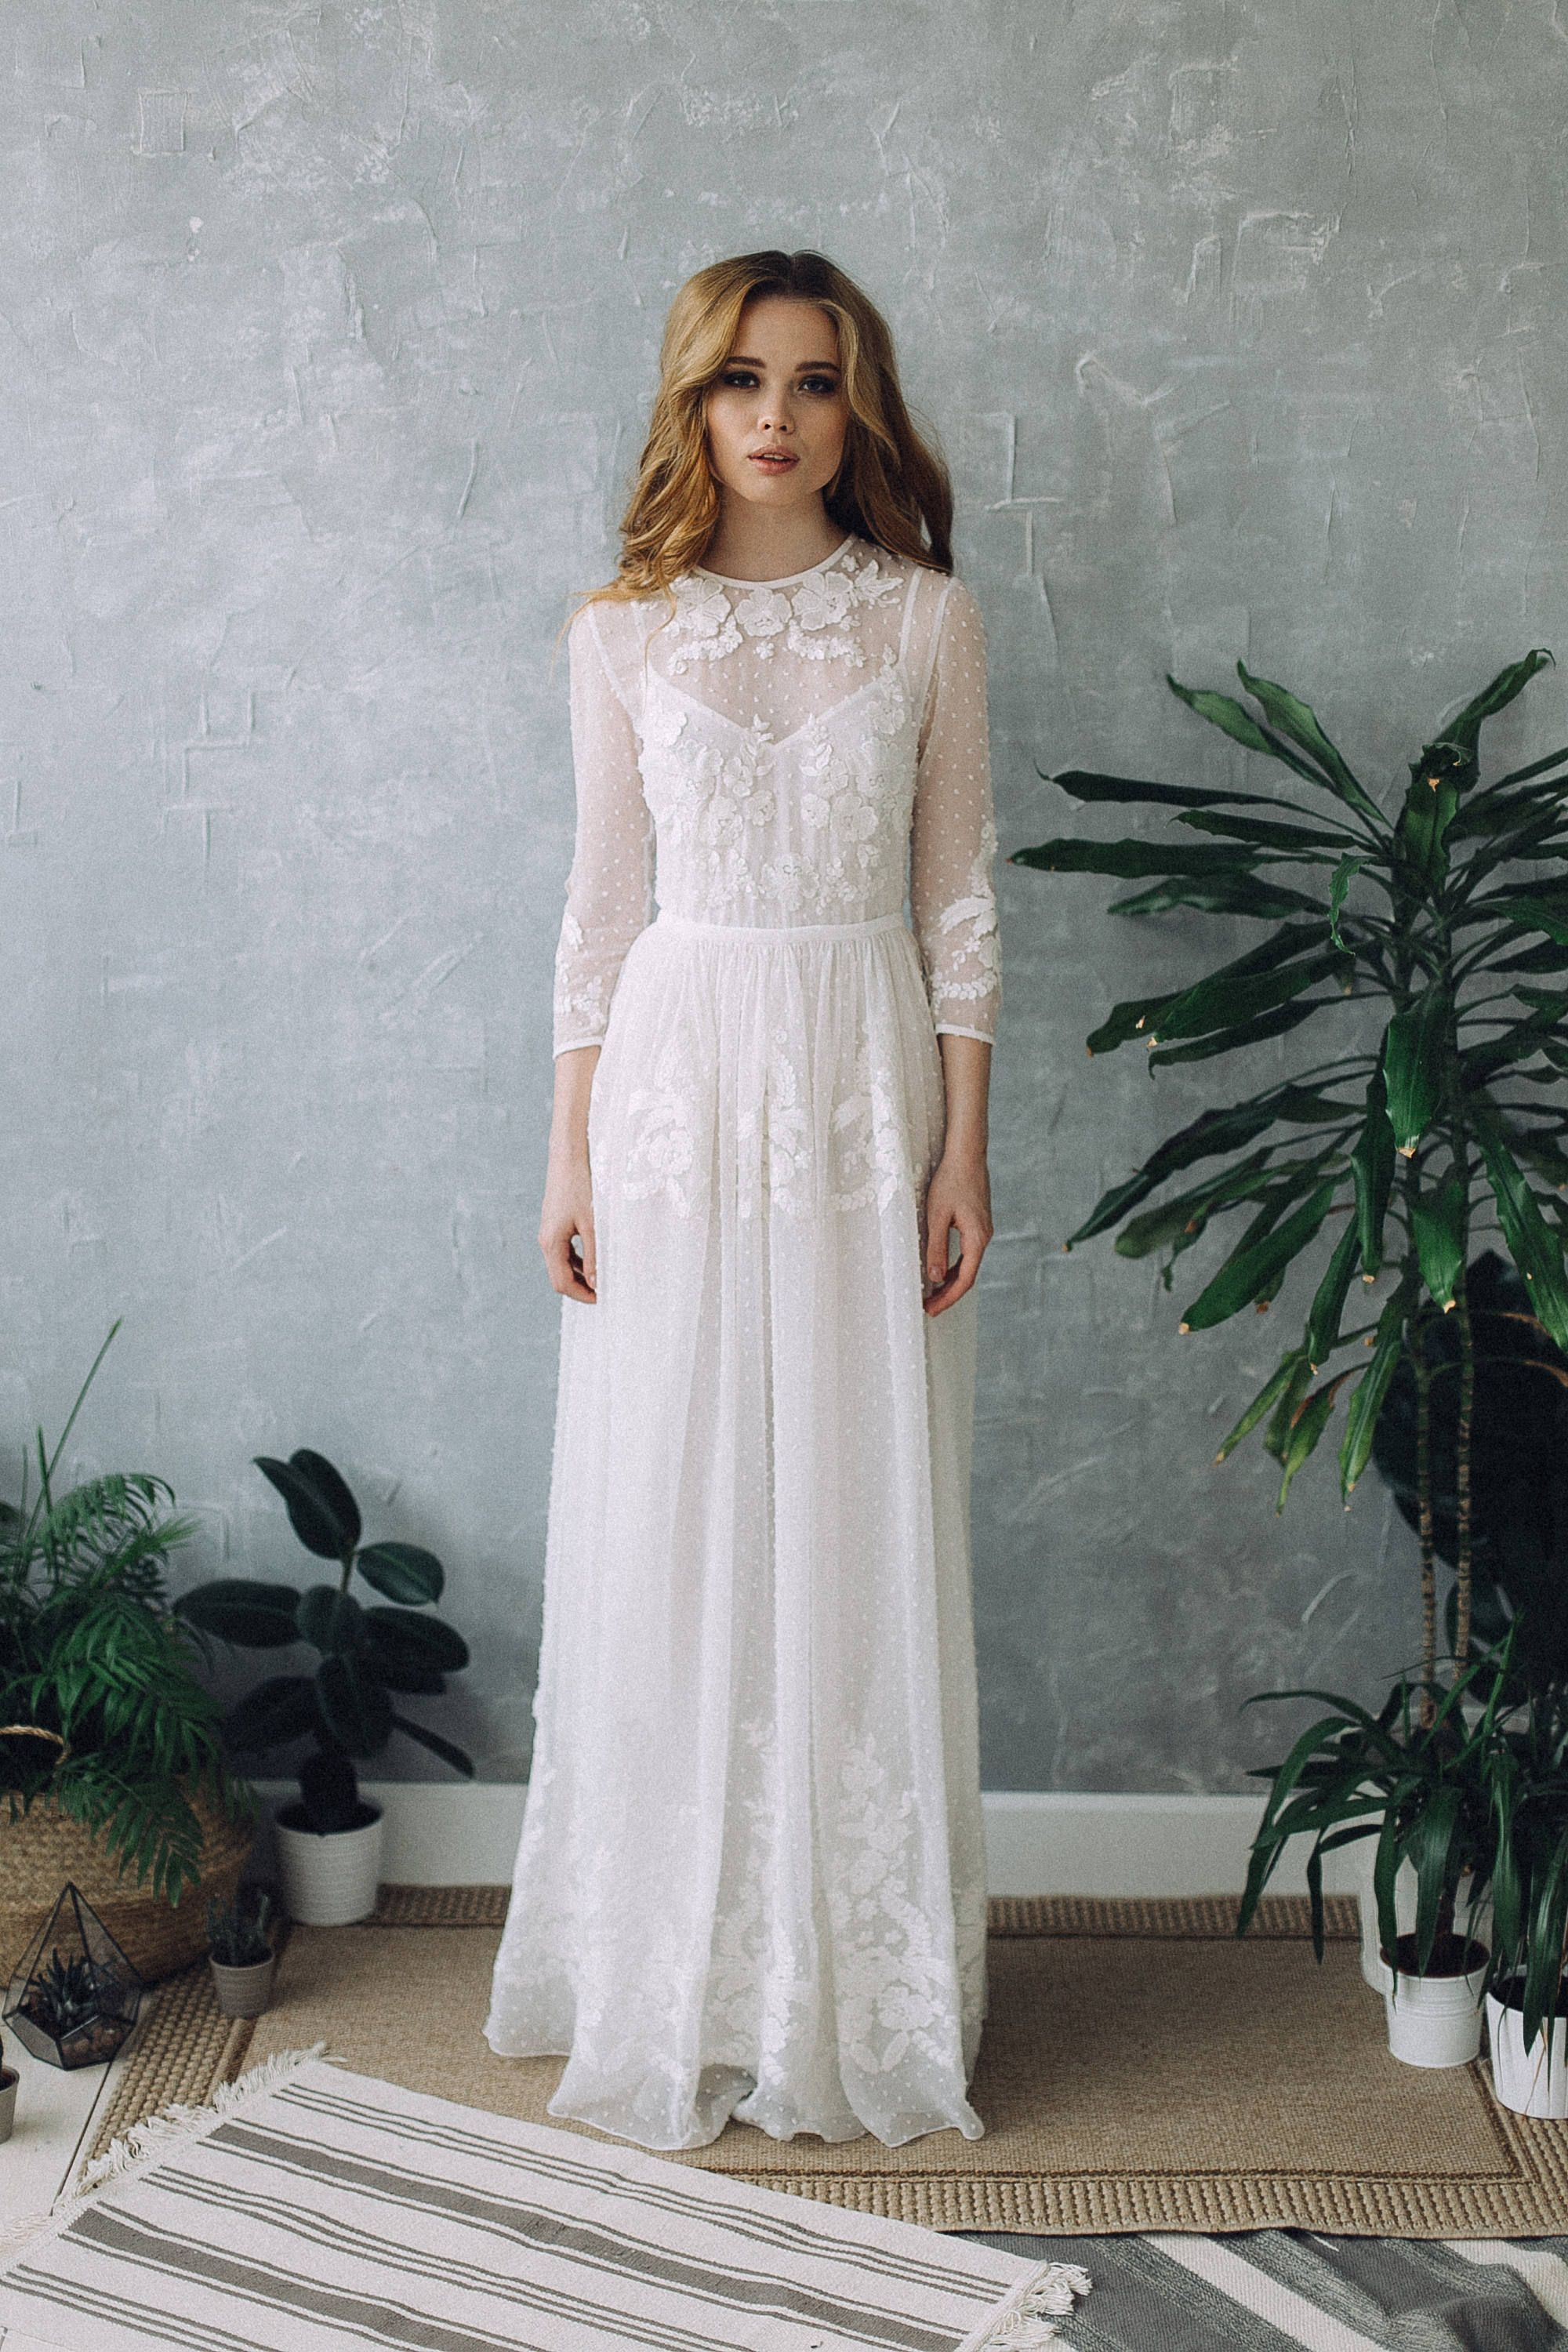 Perfect wedding dress in warm white color floorlength dress made